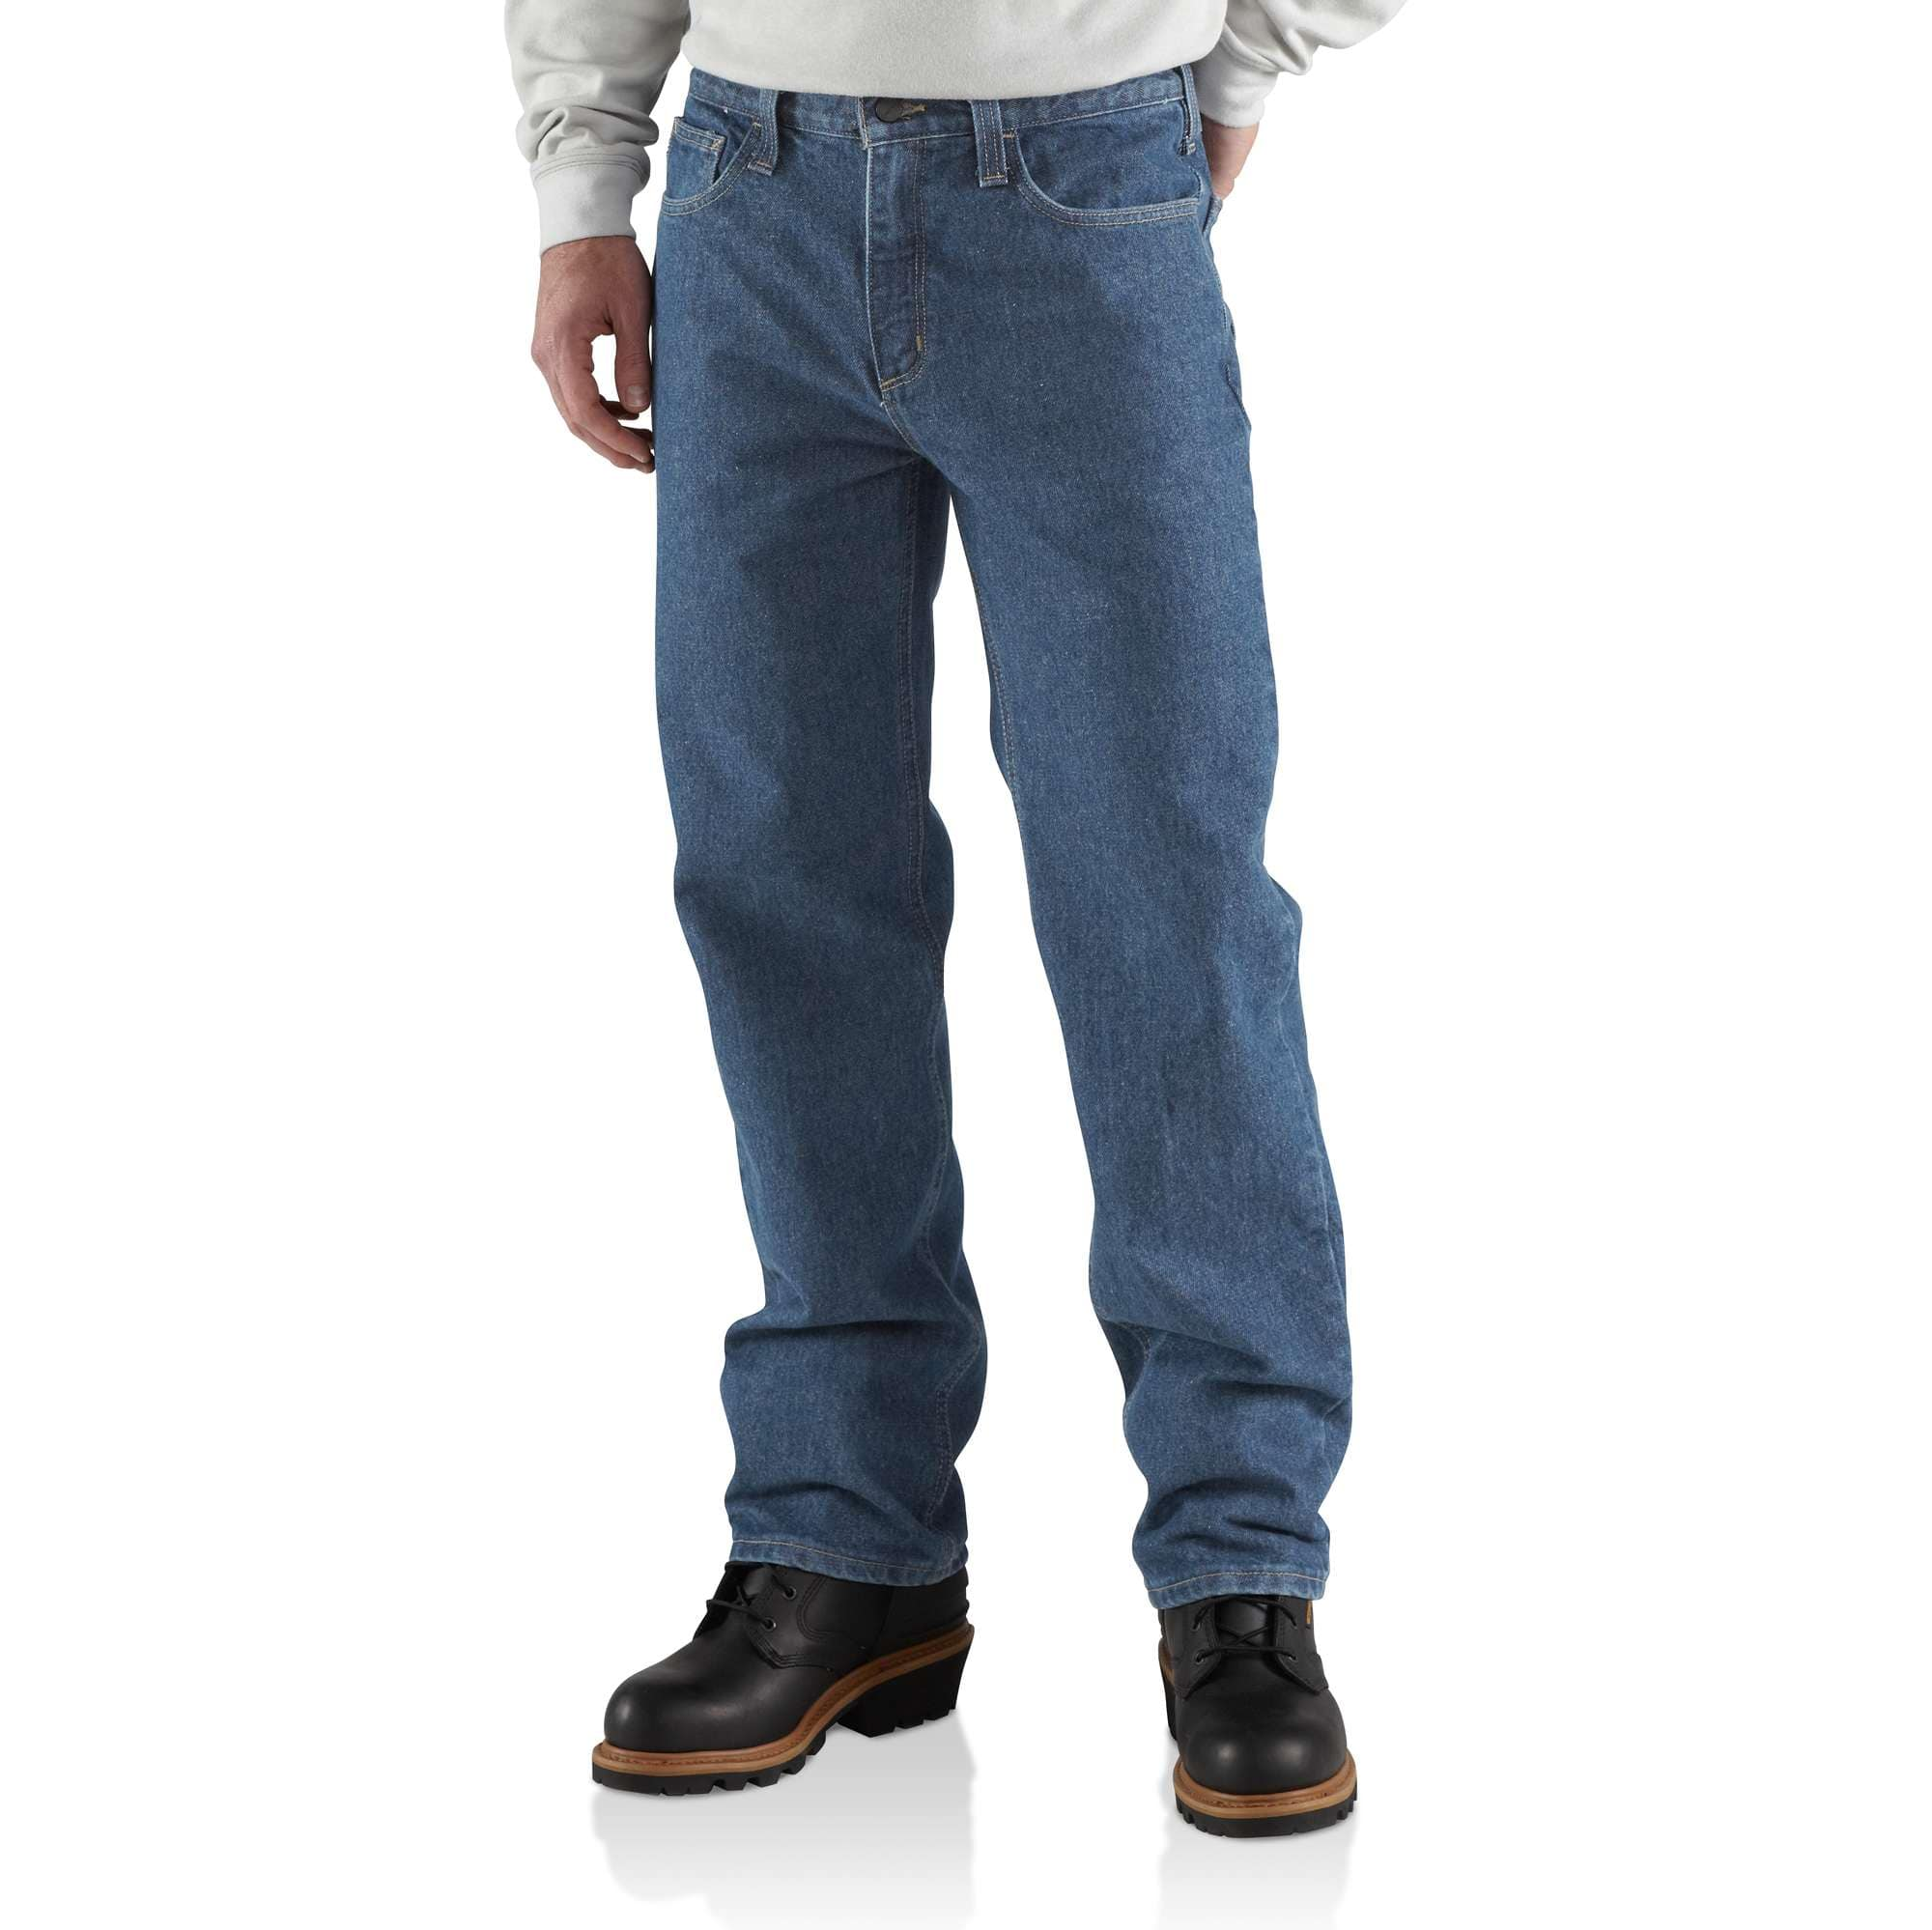 048e678998ef Men s Flame-Resistant Relaxed-Fit Utility Jean FRB004